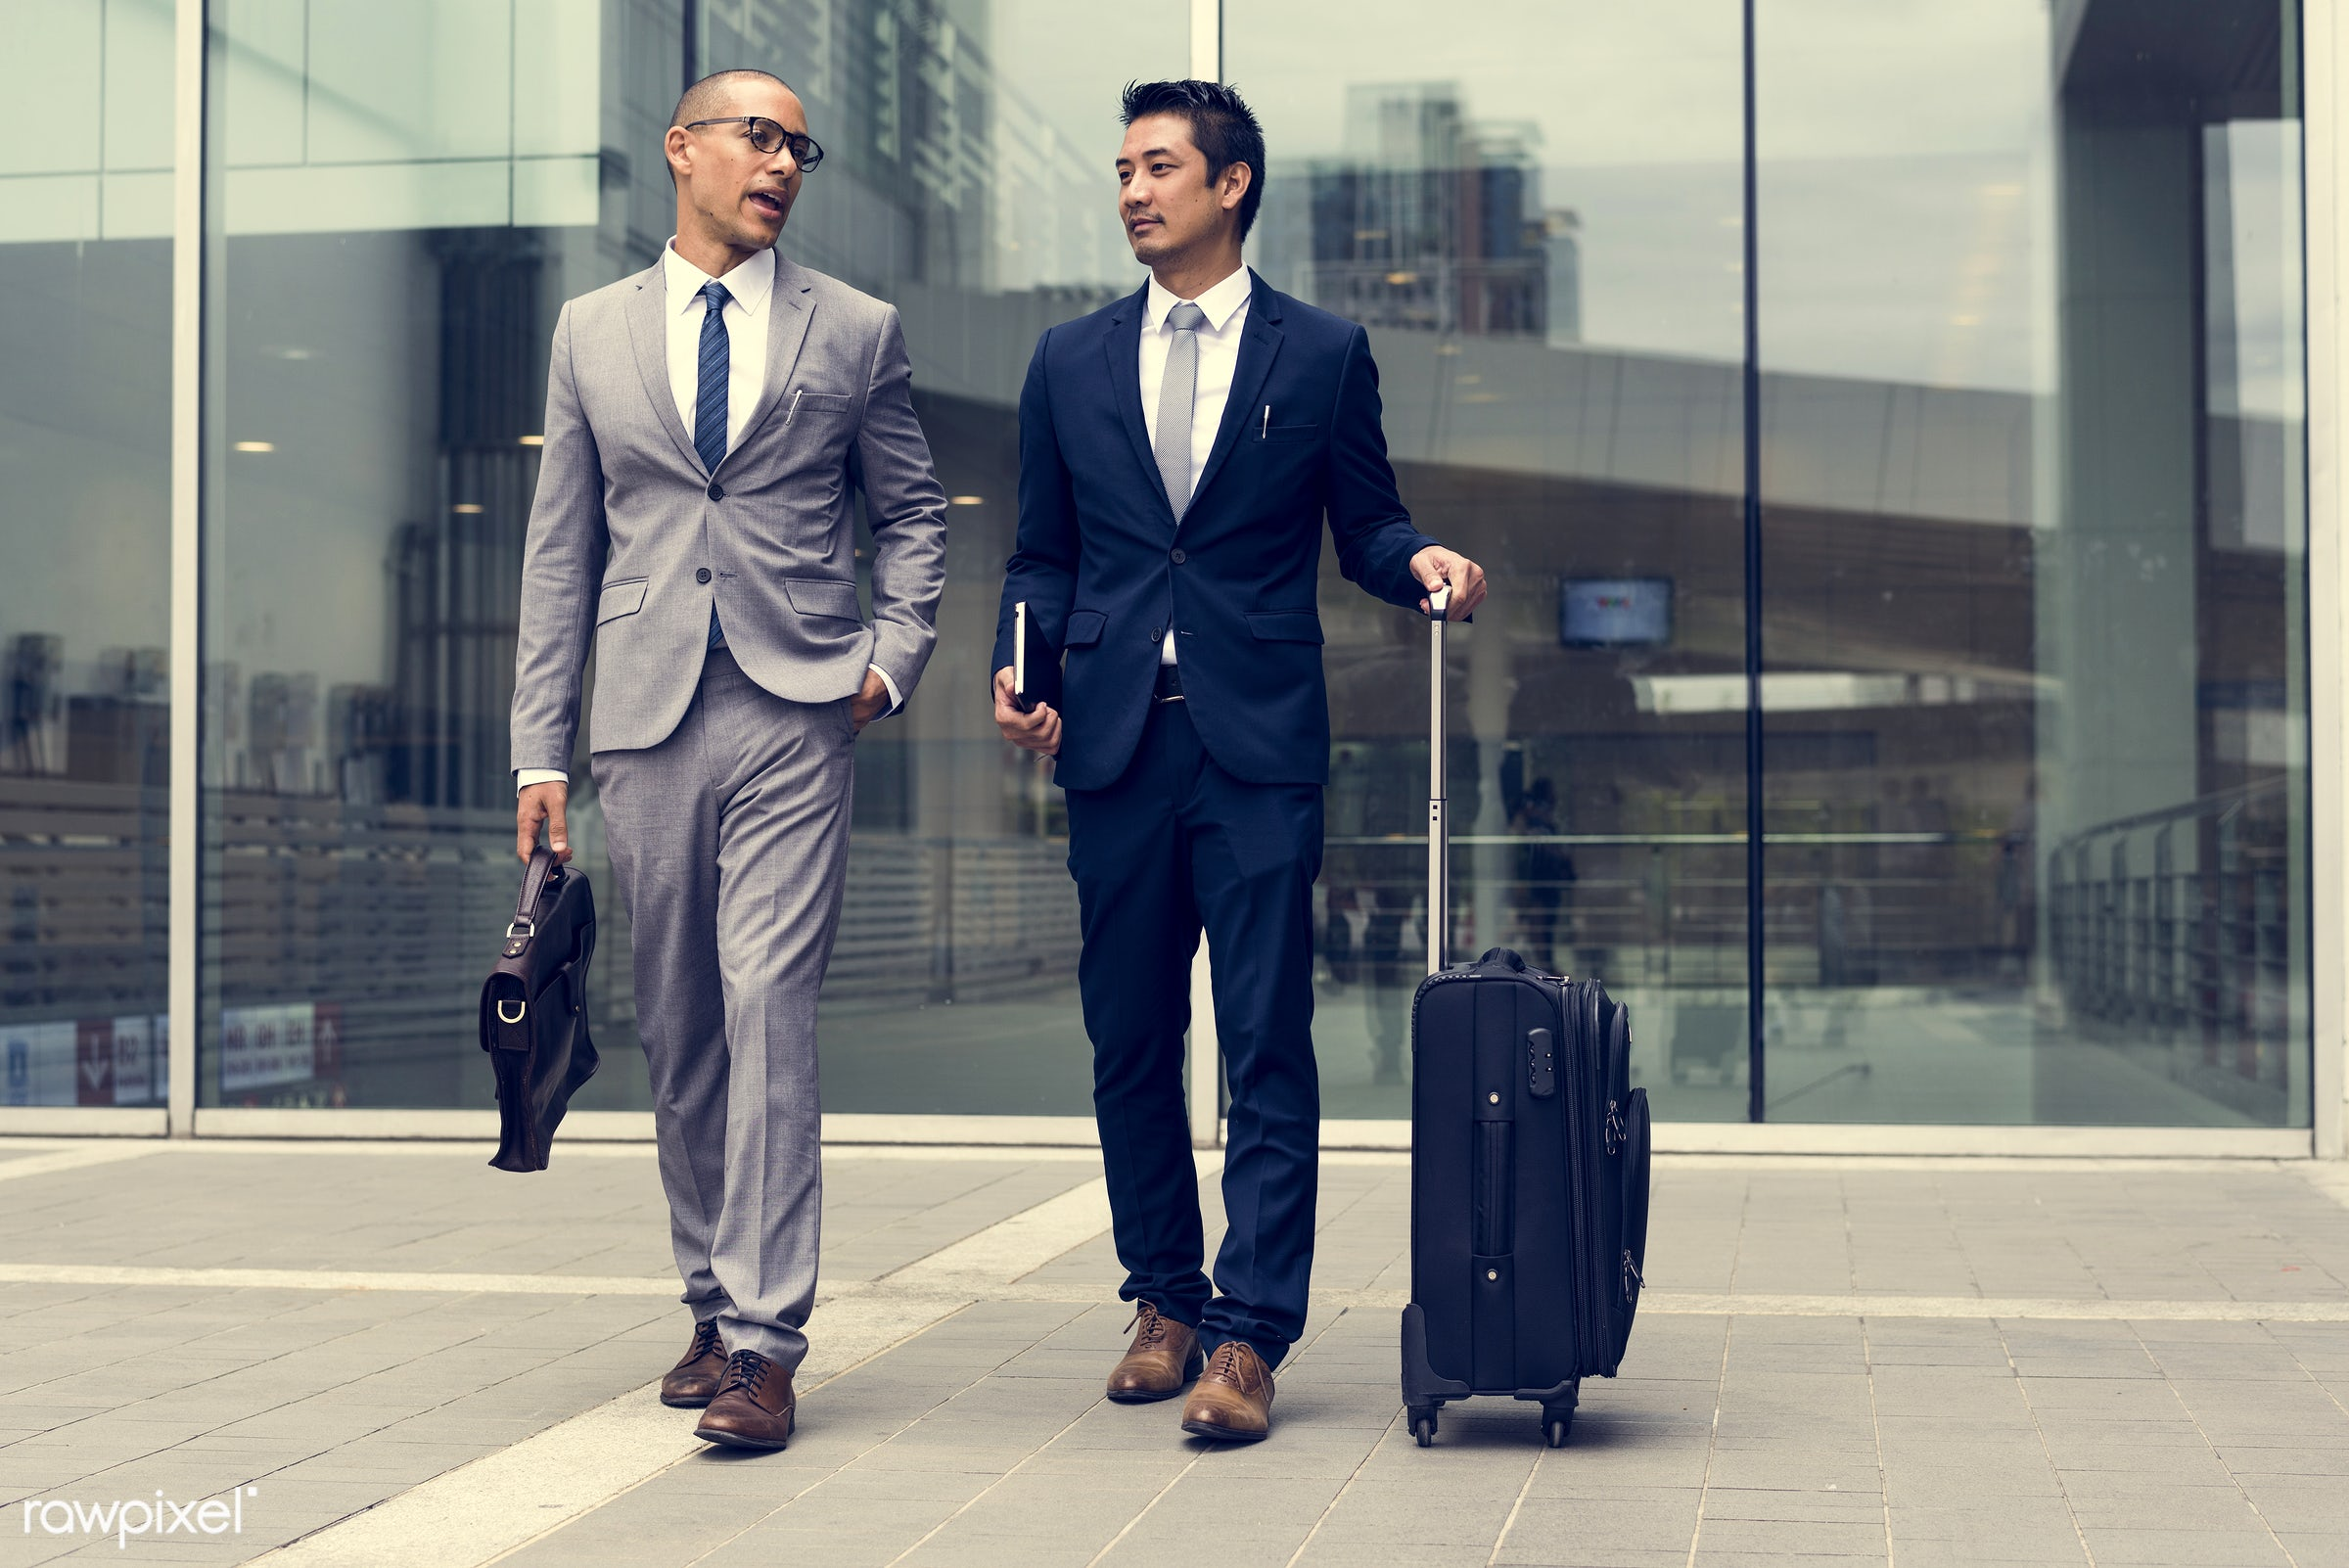 expression, business trip, person, manager, diverse, white collar worker, luggage, travel, people, together, caucasian,...